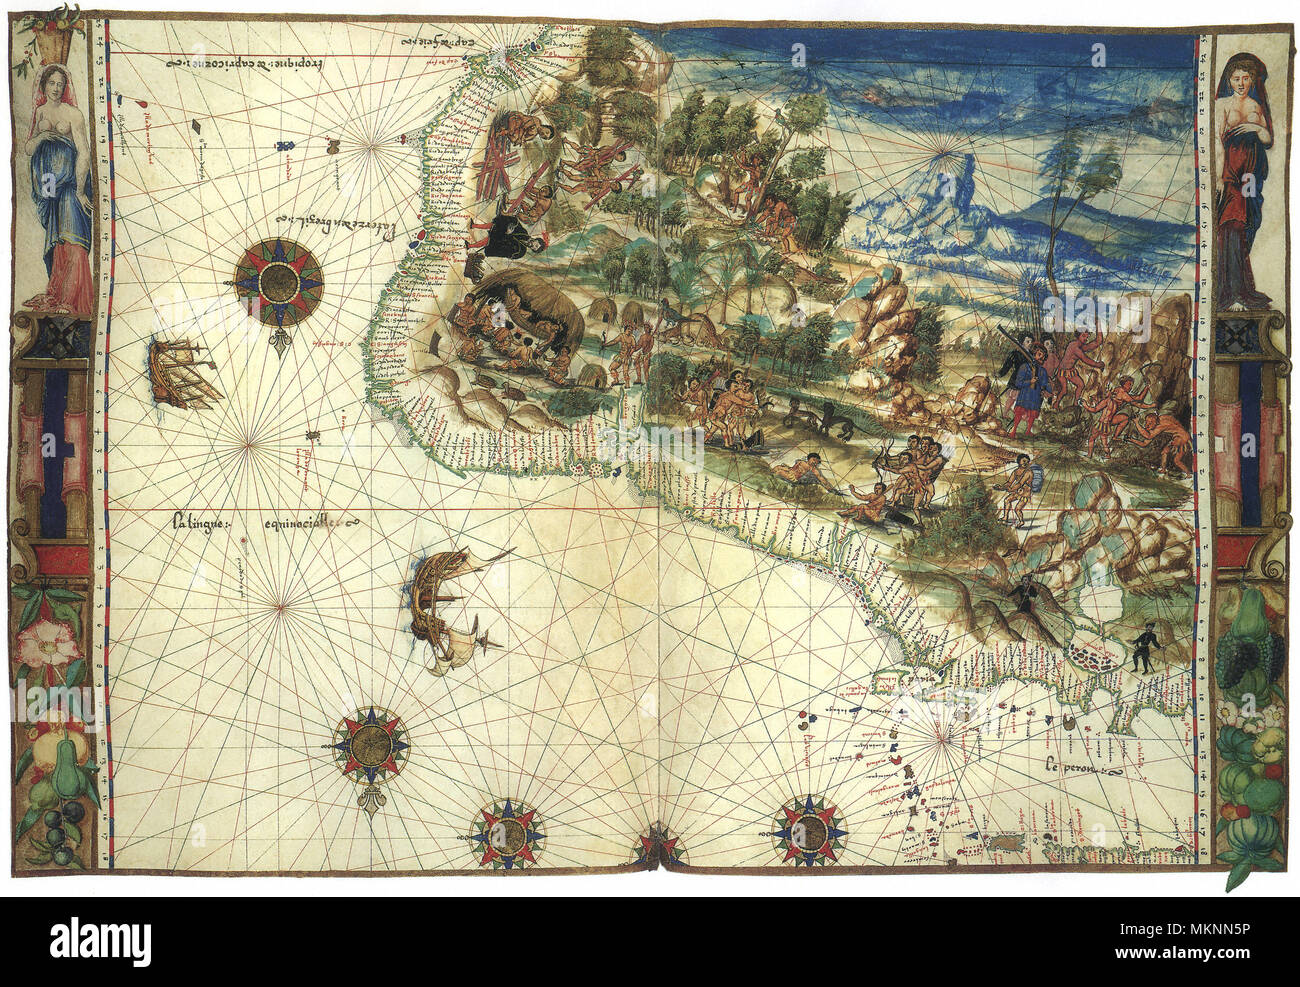 NE South American Map 1547 Stock Photo: 184259762 - Alamy